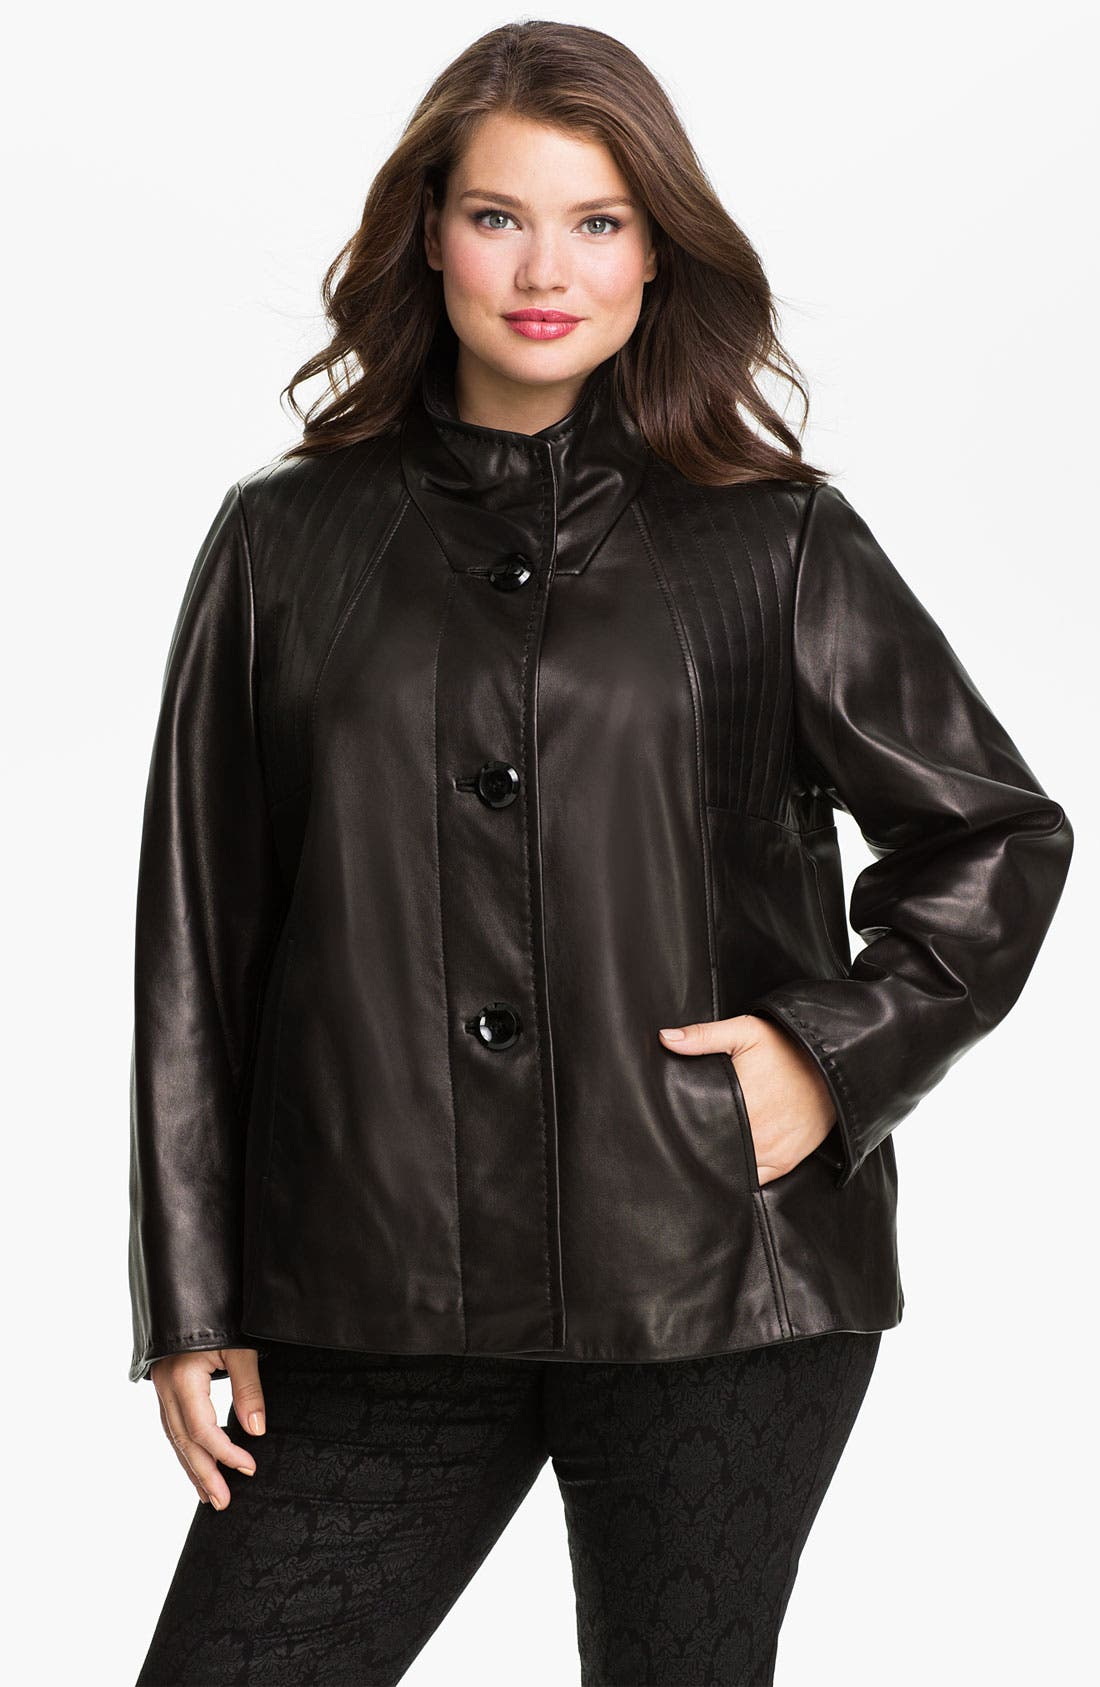 Alternate Image 1 Selected - Ellen Tracy Button Up Leather Jacket (Plus) (Nordstrom Exclusive)